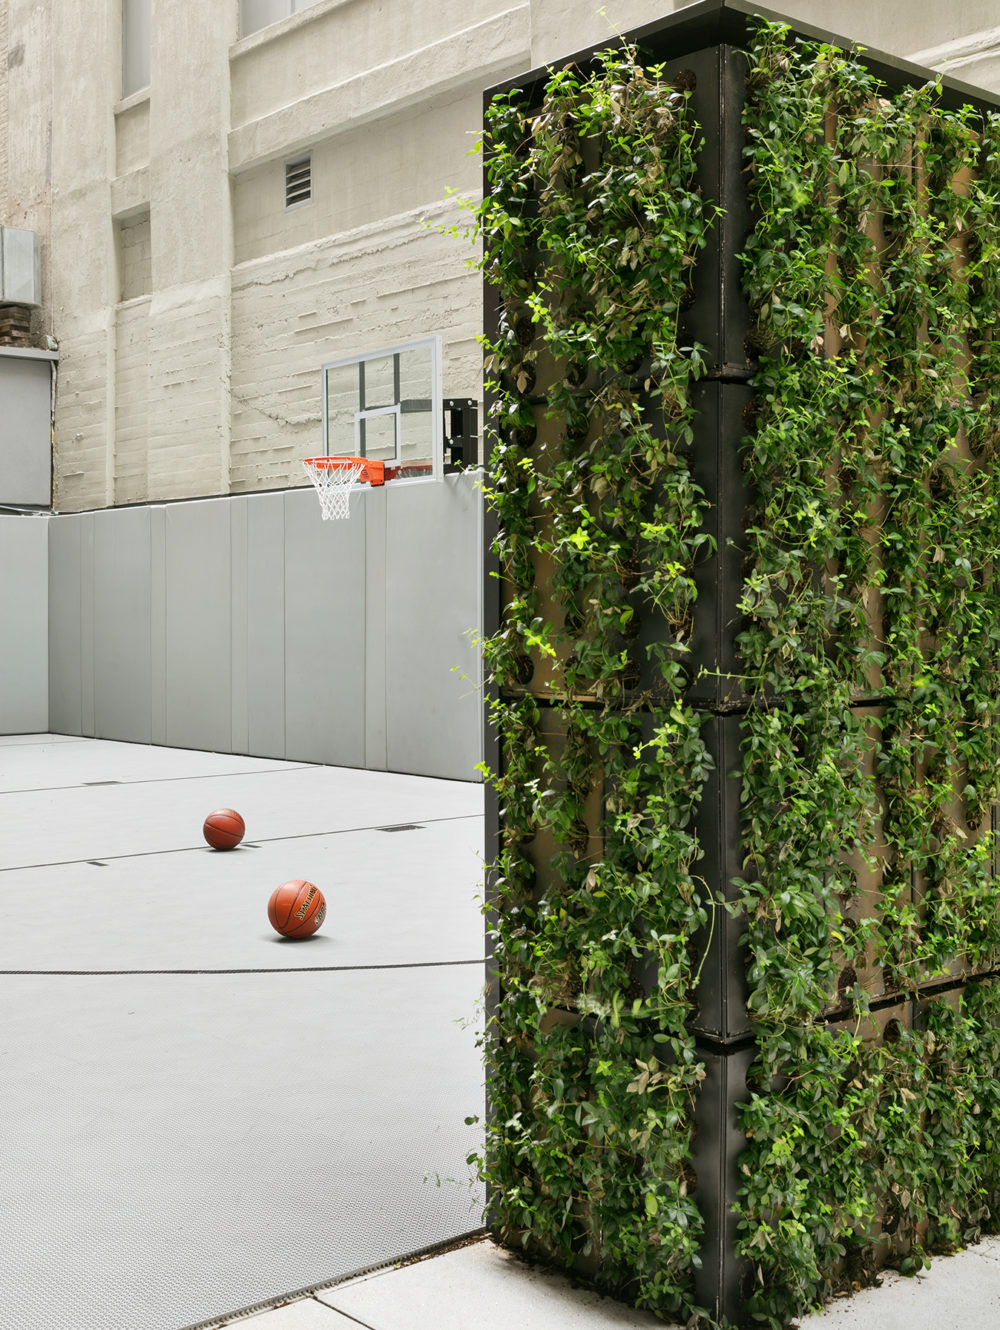 Exterior view of 70 Charlton condominiums sports court in New York City. Has basketball court and vined walls.